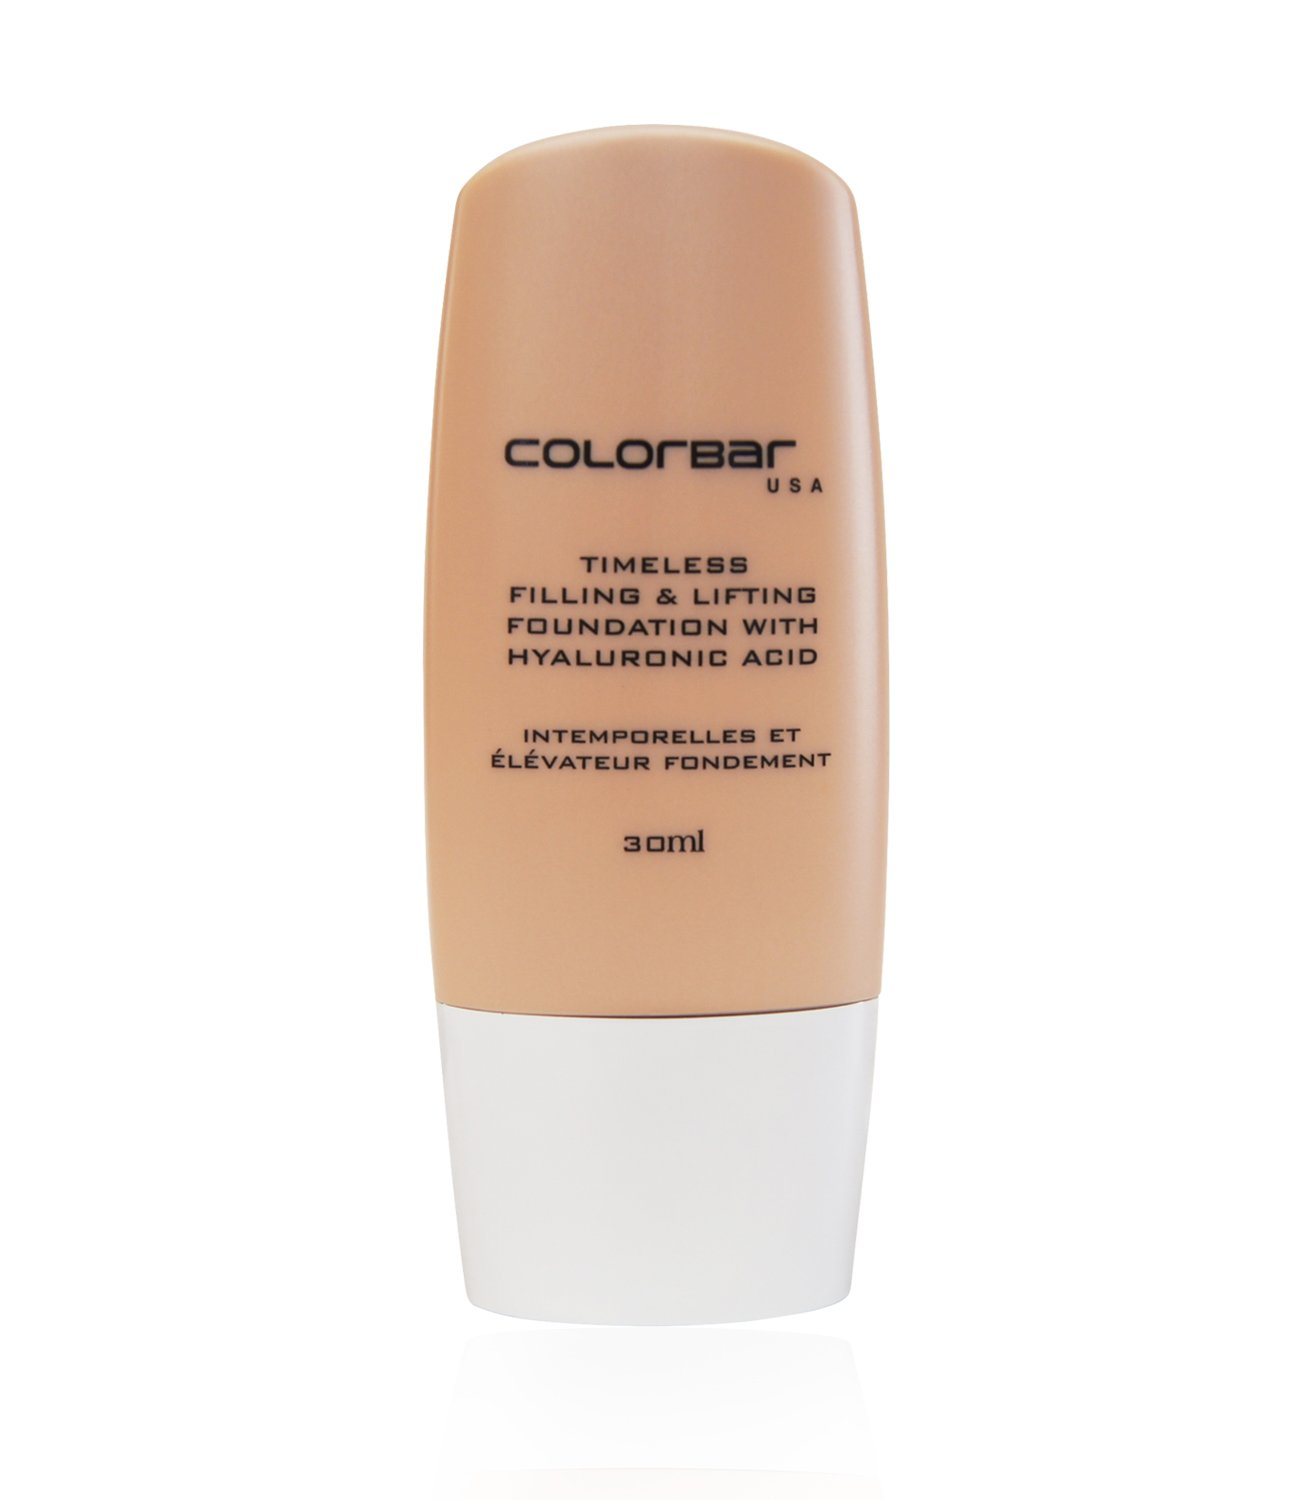 Colorbar Light Linen Timeless Filling And Lifting Foundation